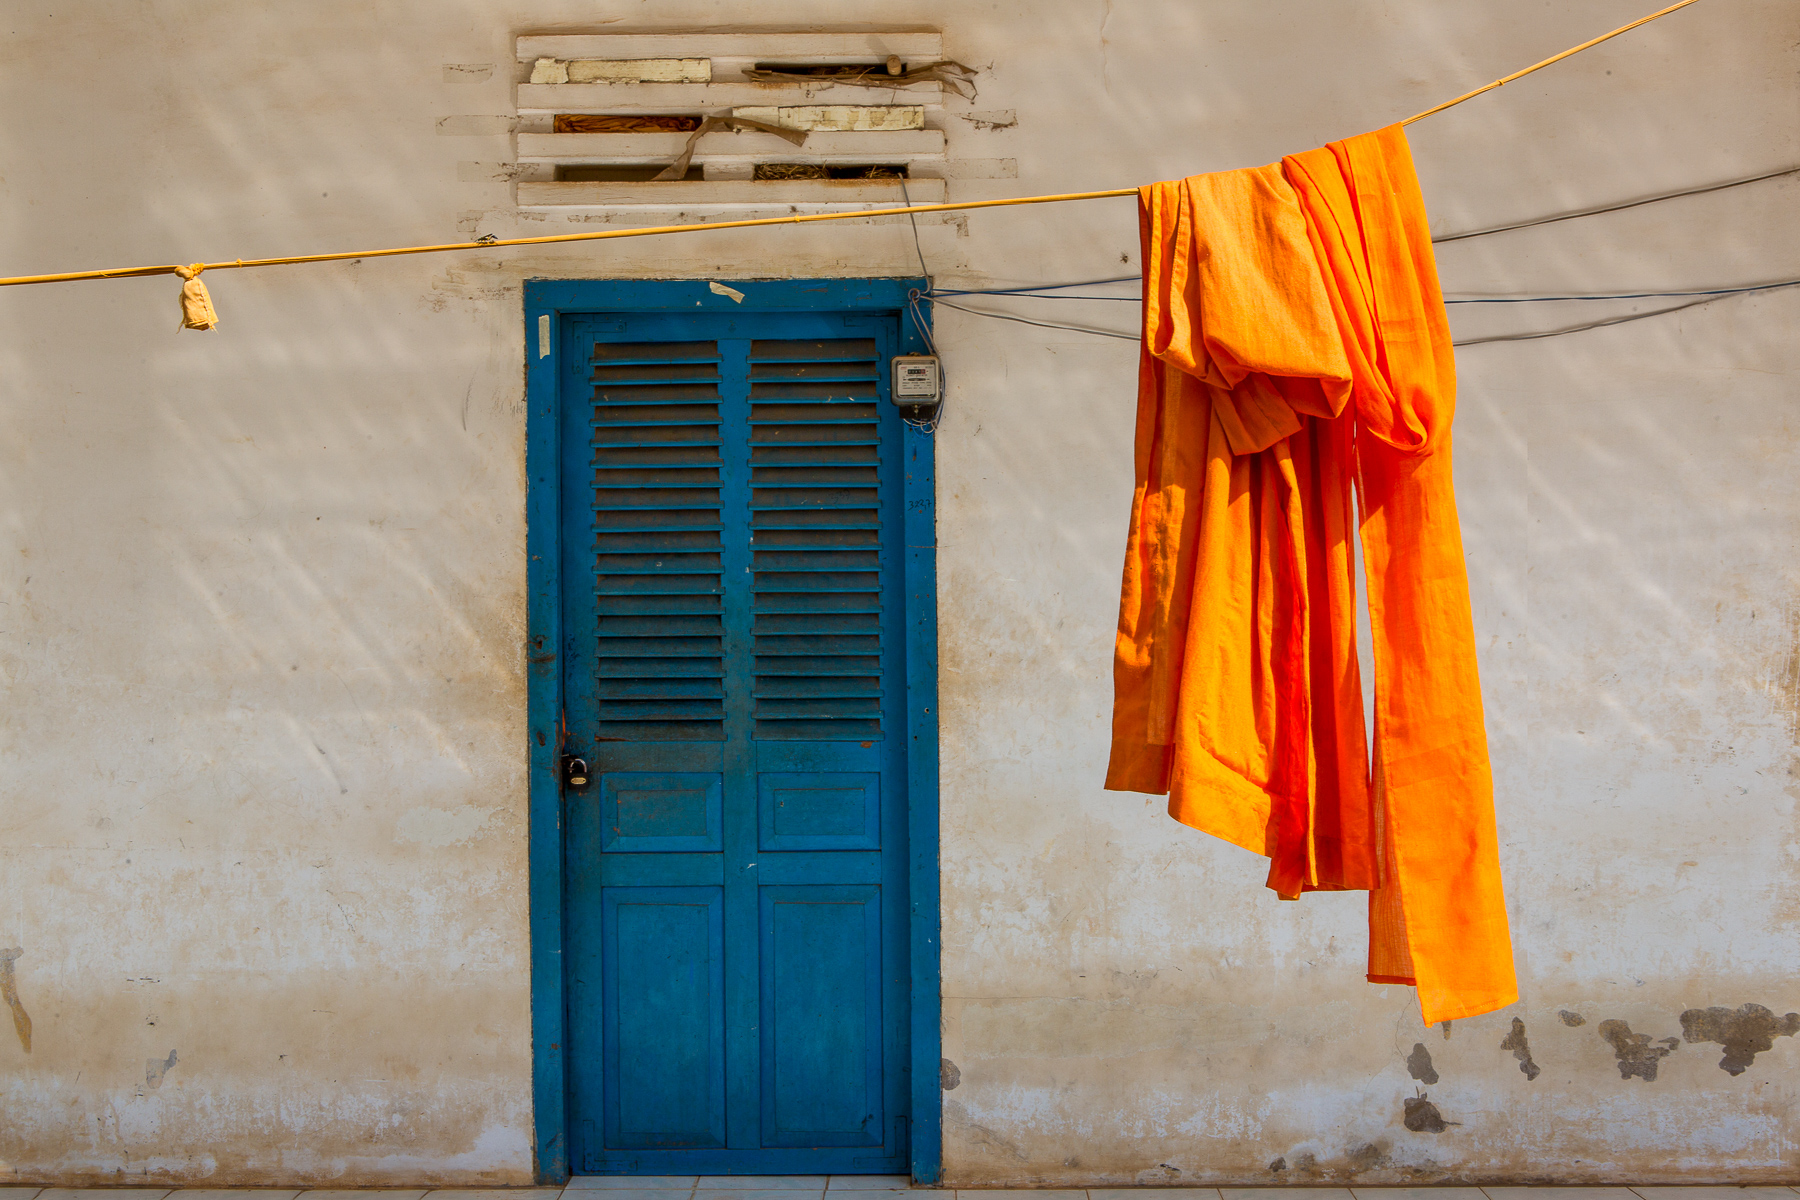 Monks Robes Drying outside a Monastery